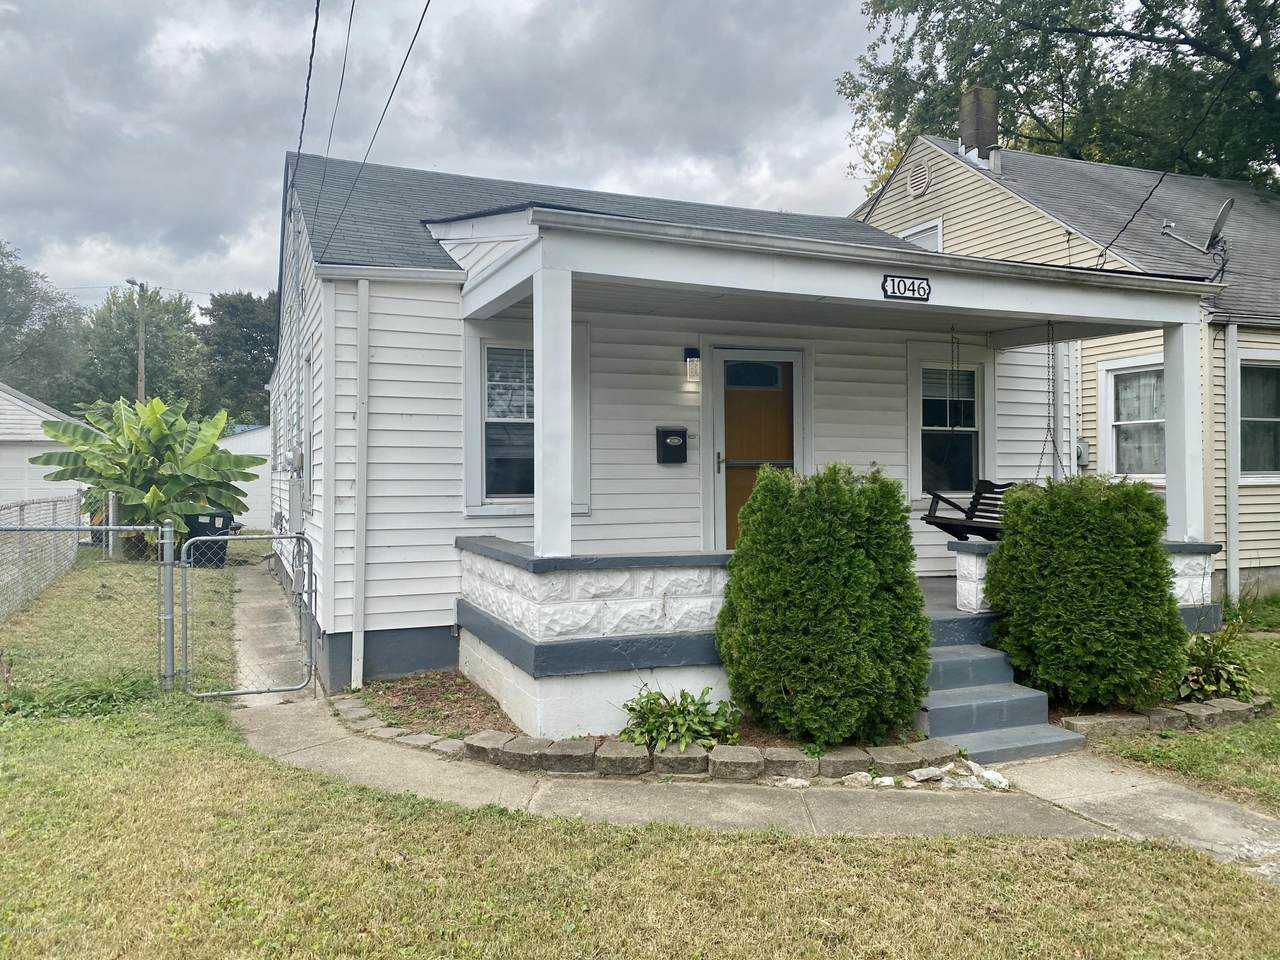 1046 Tennessee Ave - Photo 1